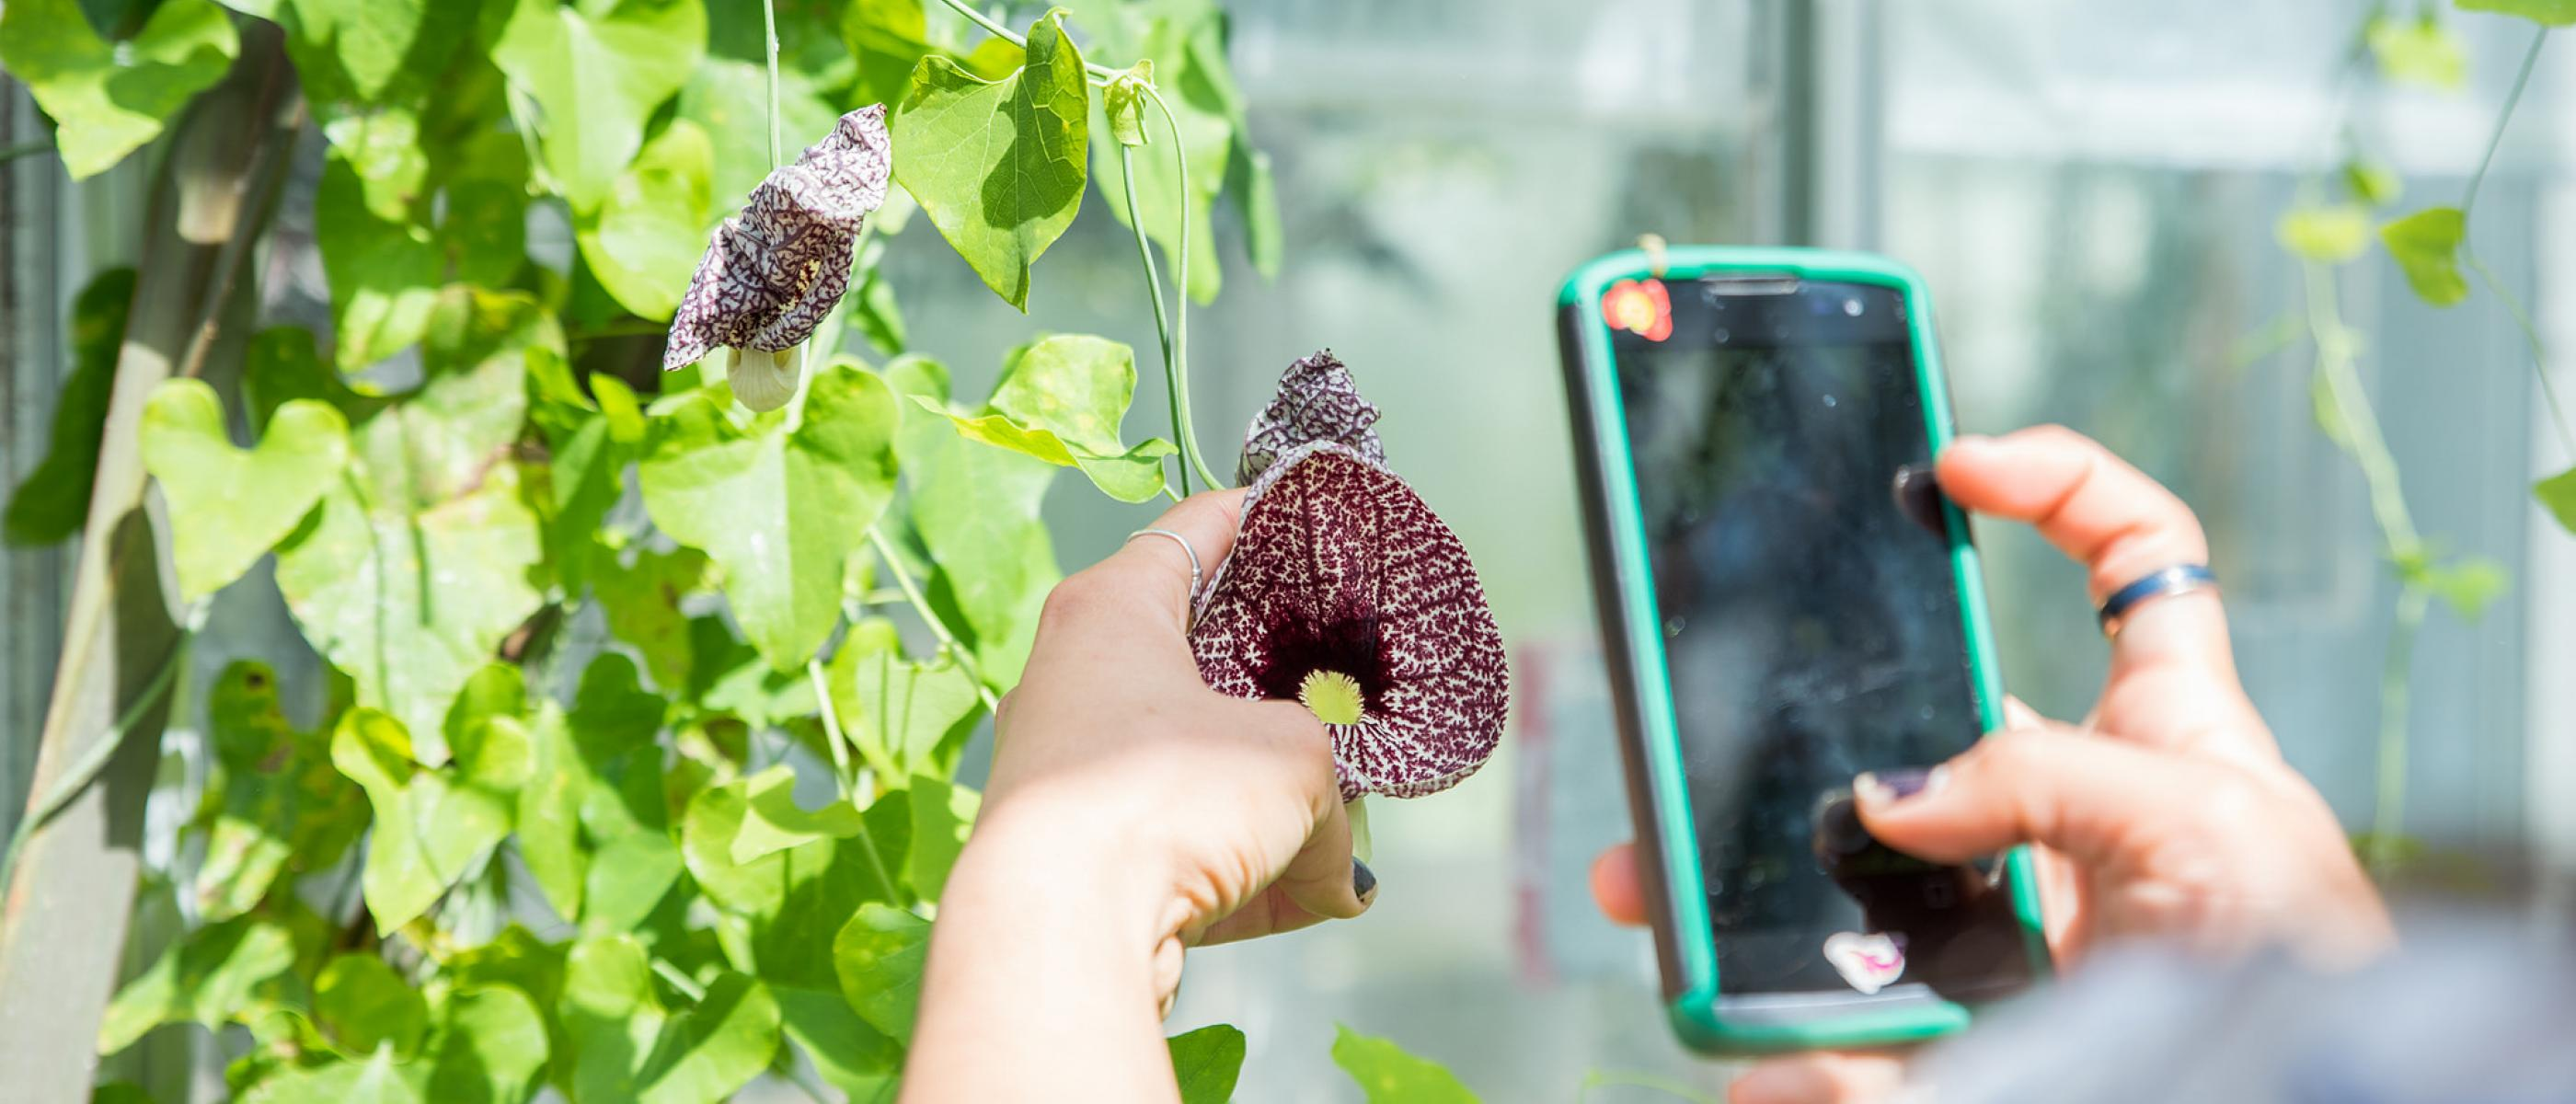 Student taking a picture of plants with mobile phone